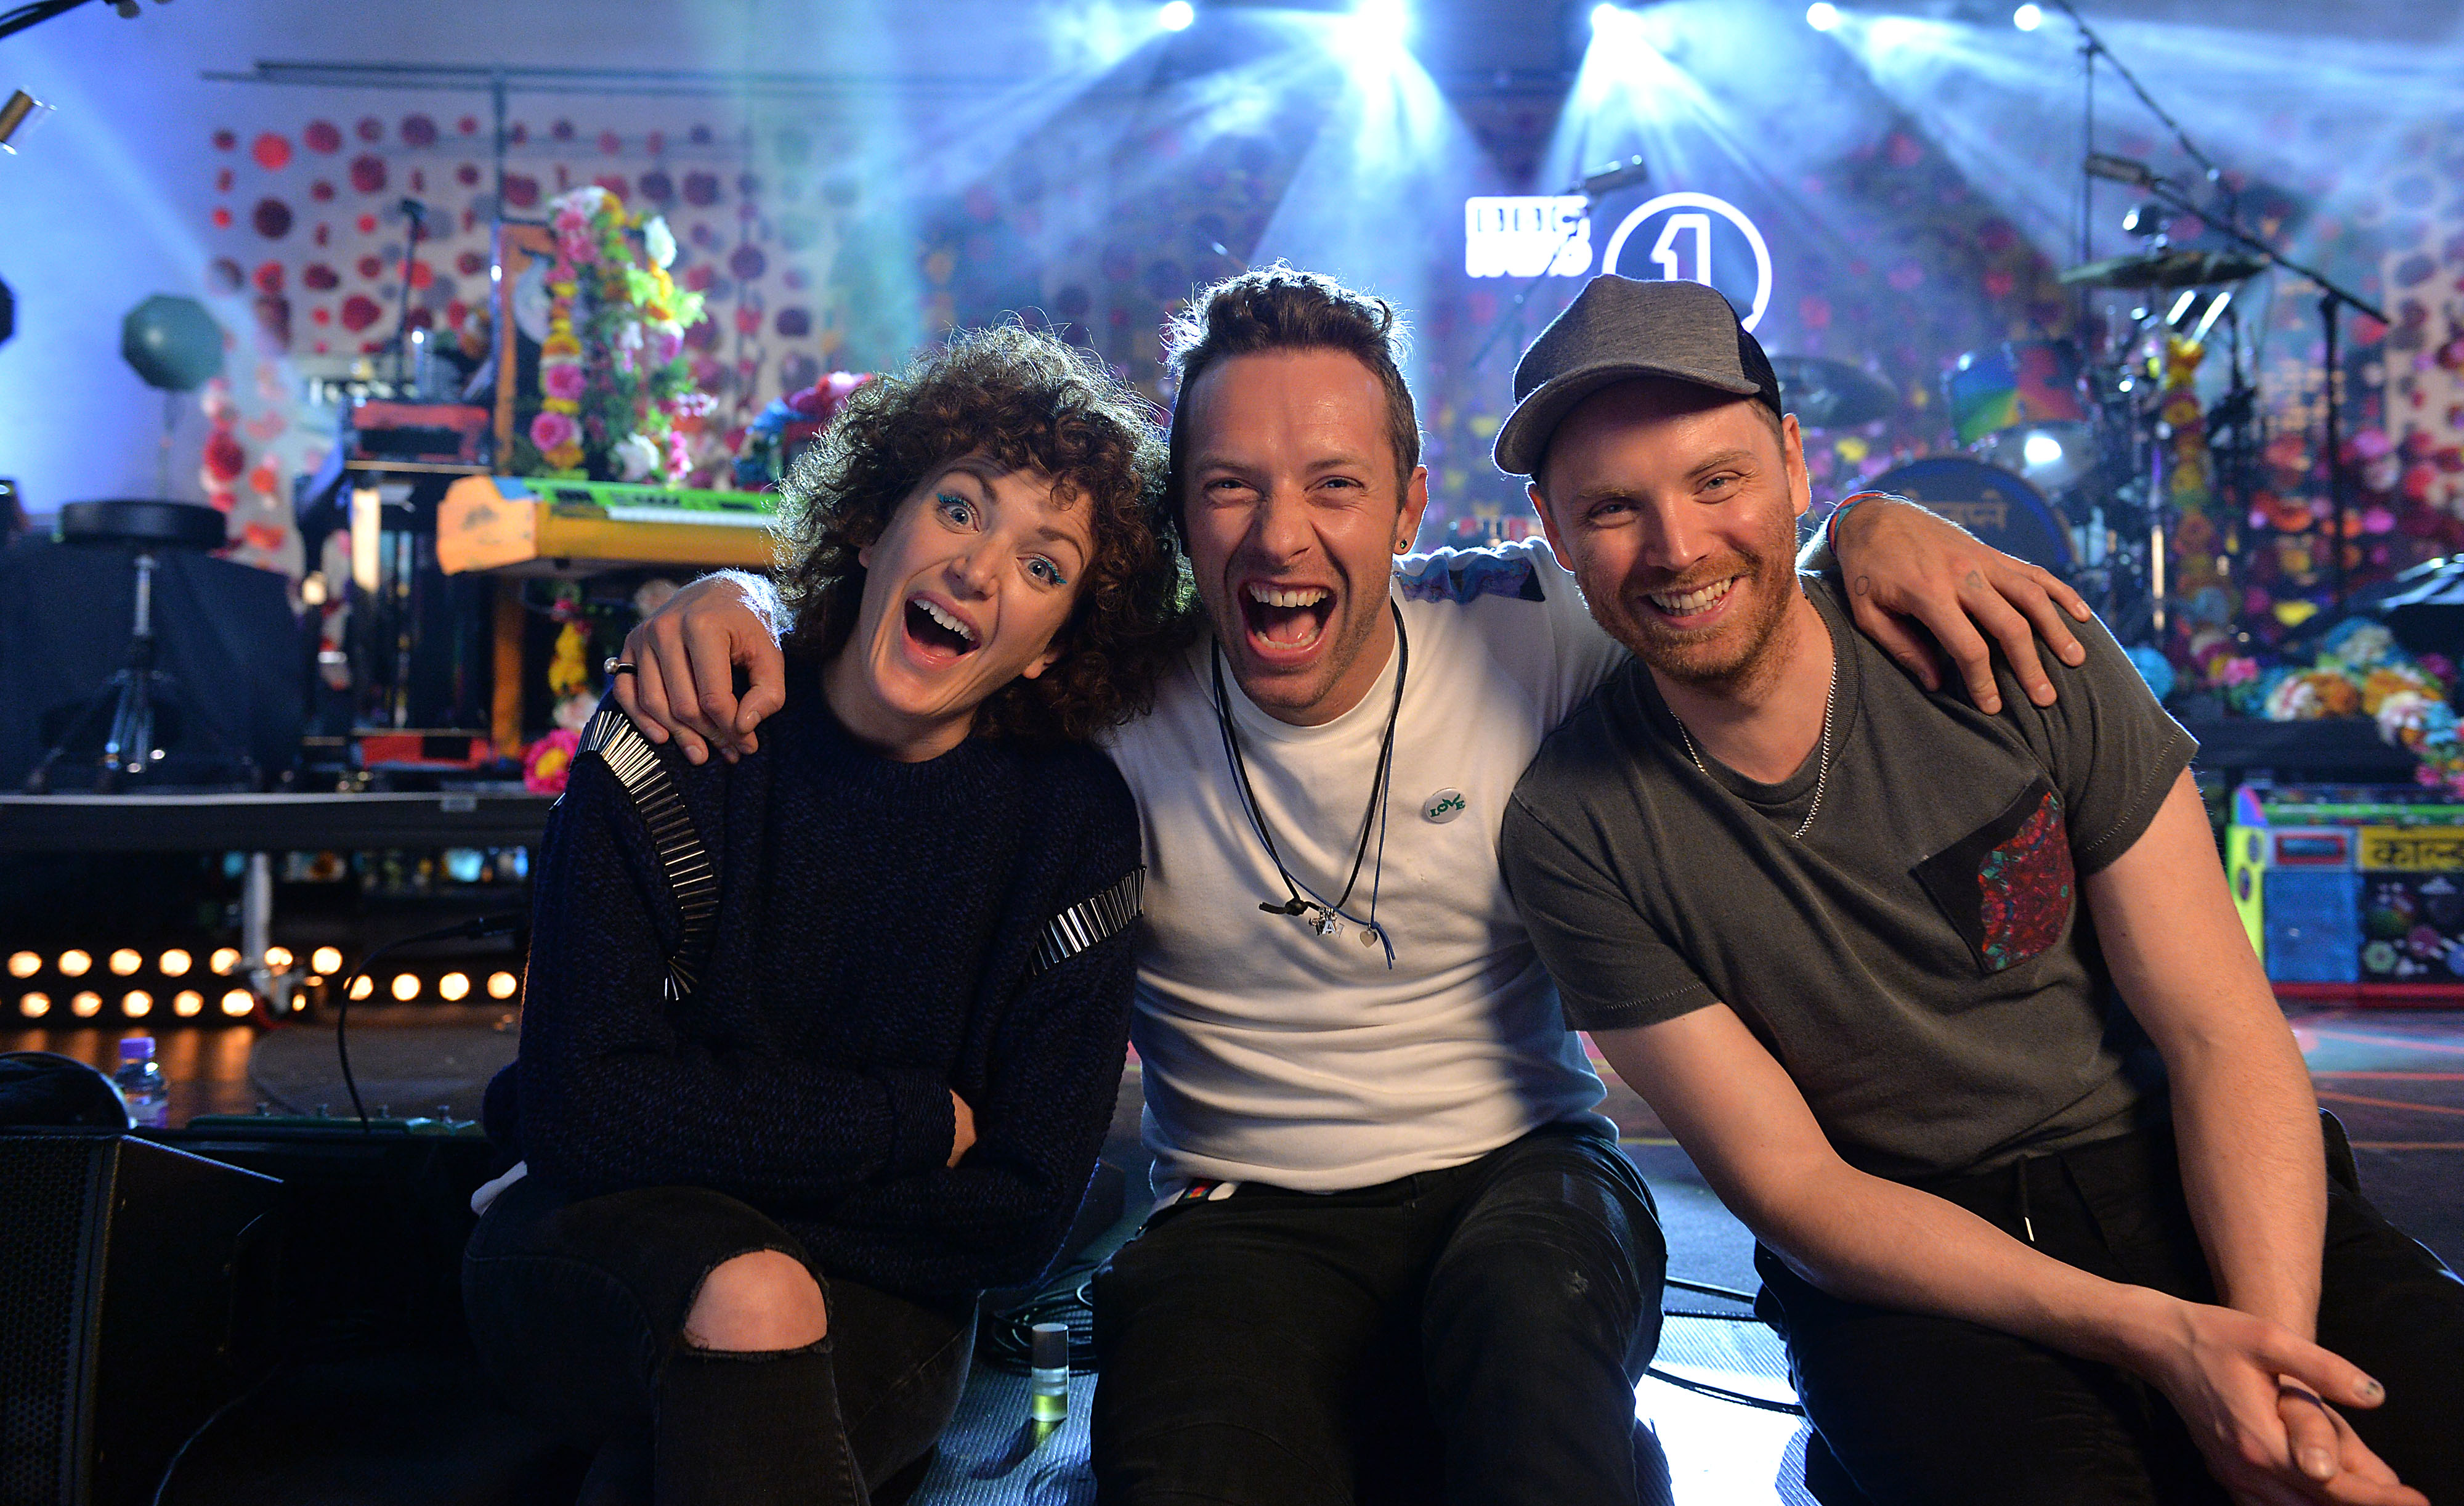 Coldplay and Annie Mac as part of Radio 1's Live Lounge at St. John's Church, Hackney on 3rd December 2015. Loftus Media Photographer: Mark Allan. © BBC.